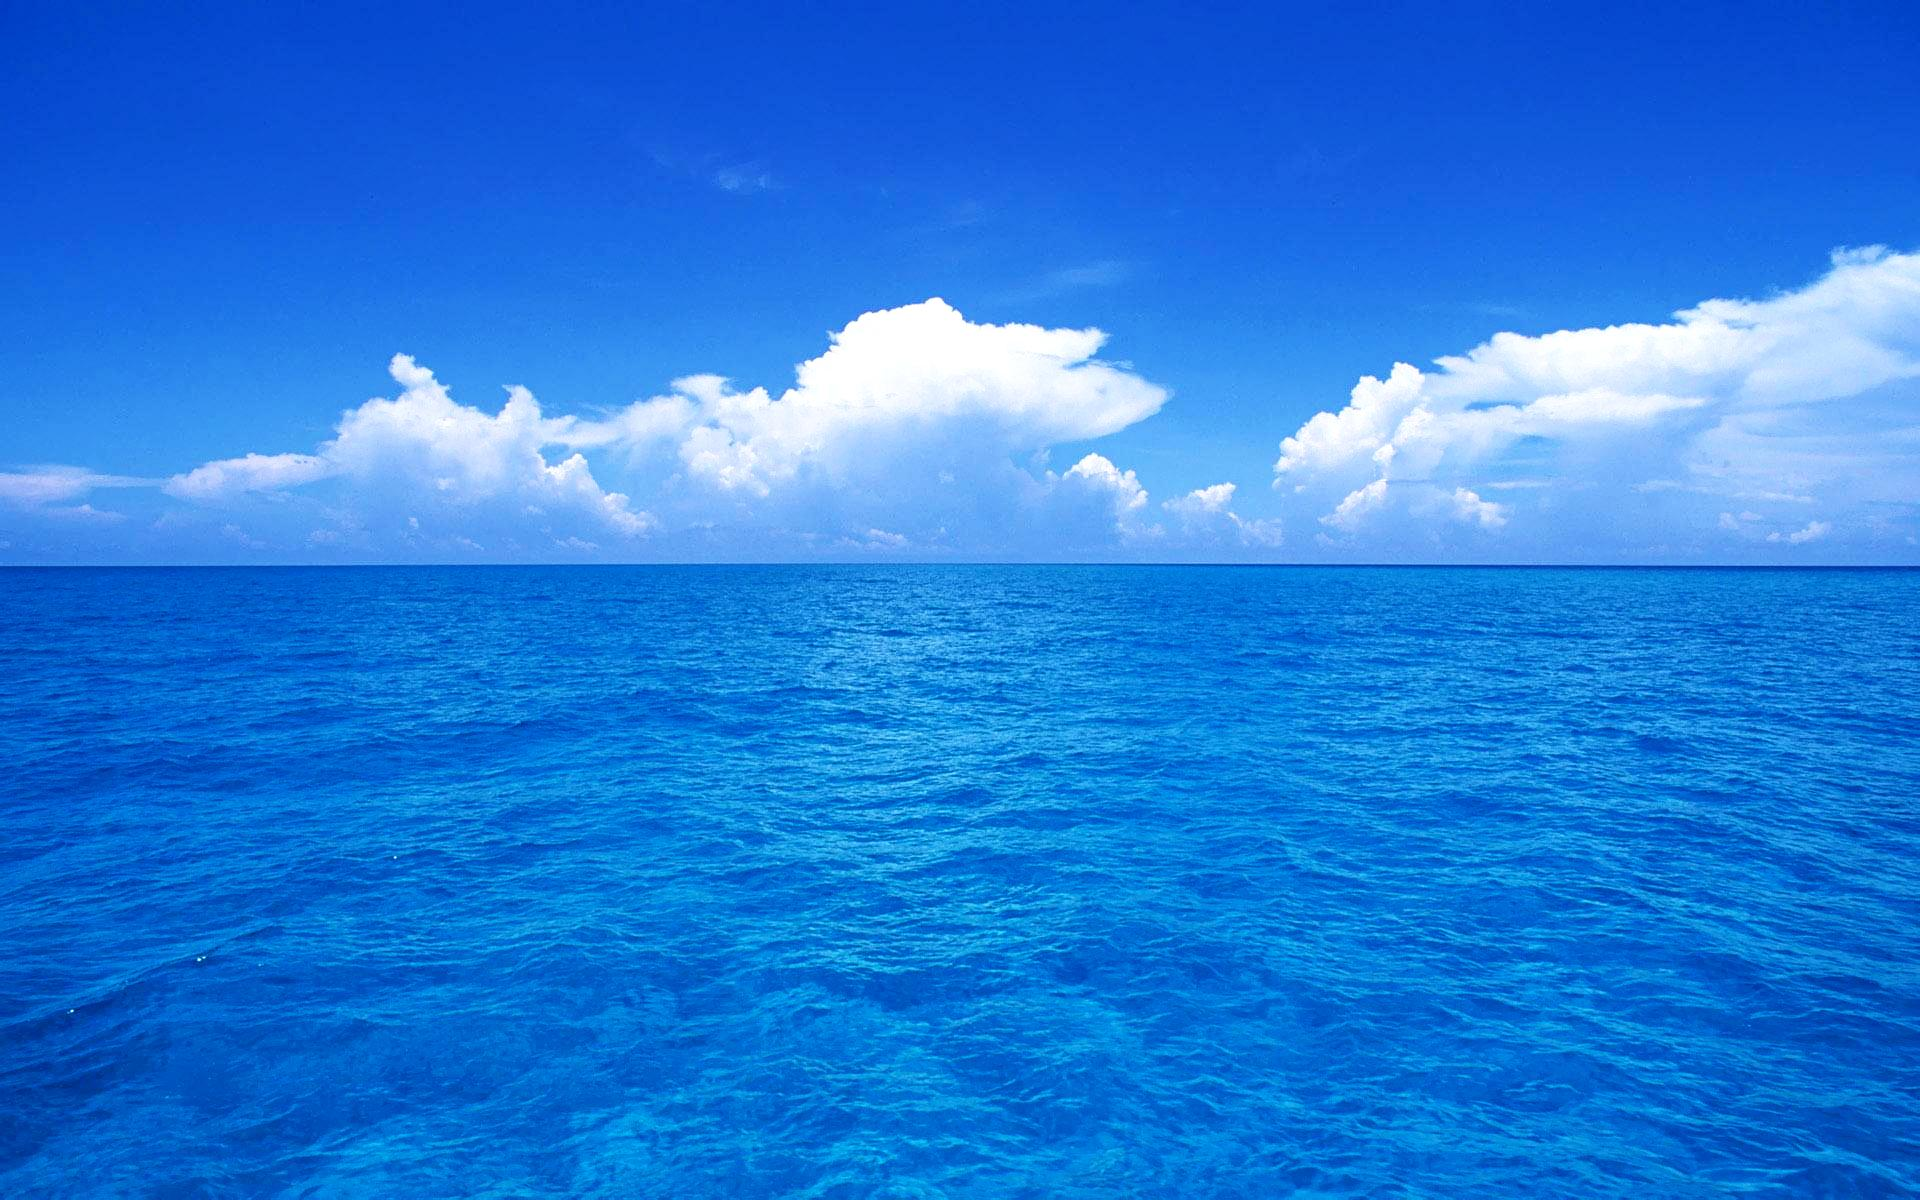 Ocean Background Wallpapers WIN10 THEMES 1920x1200